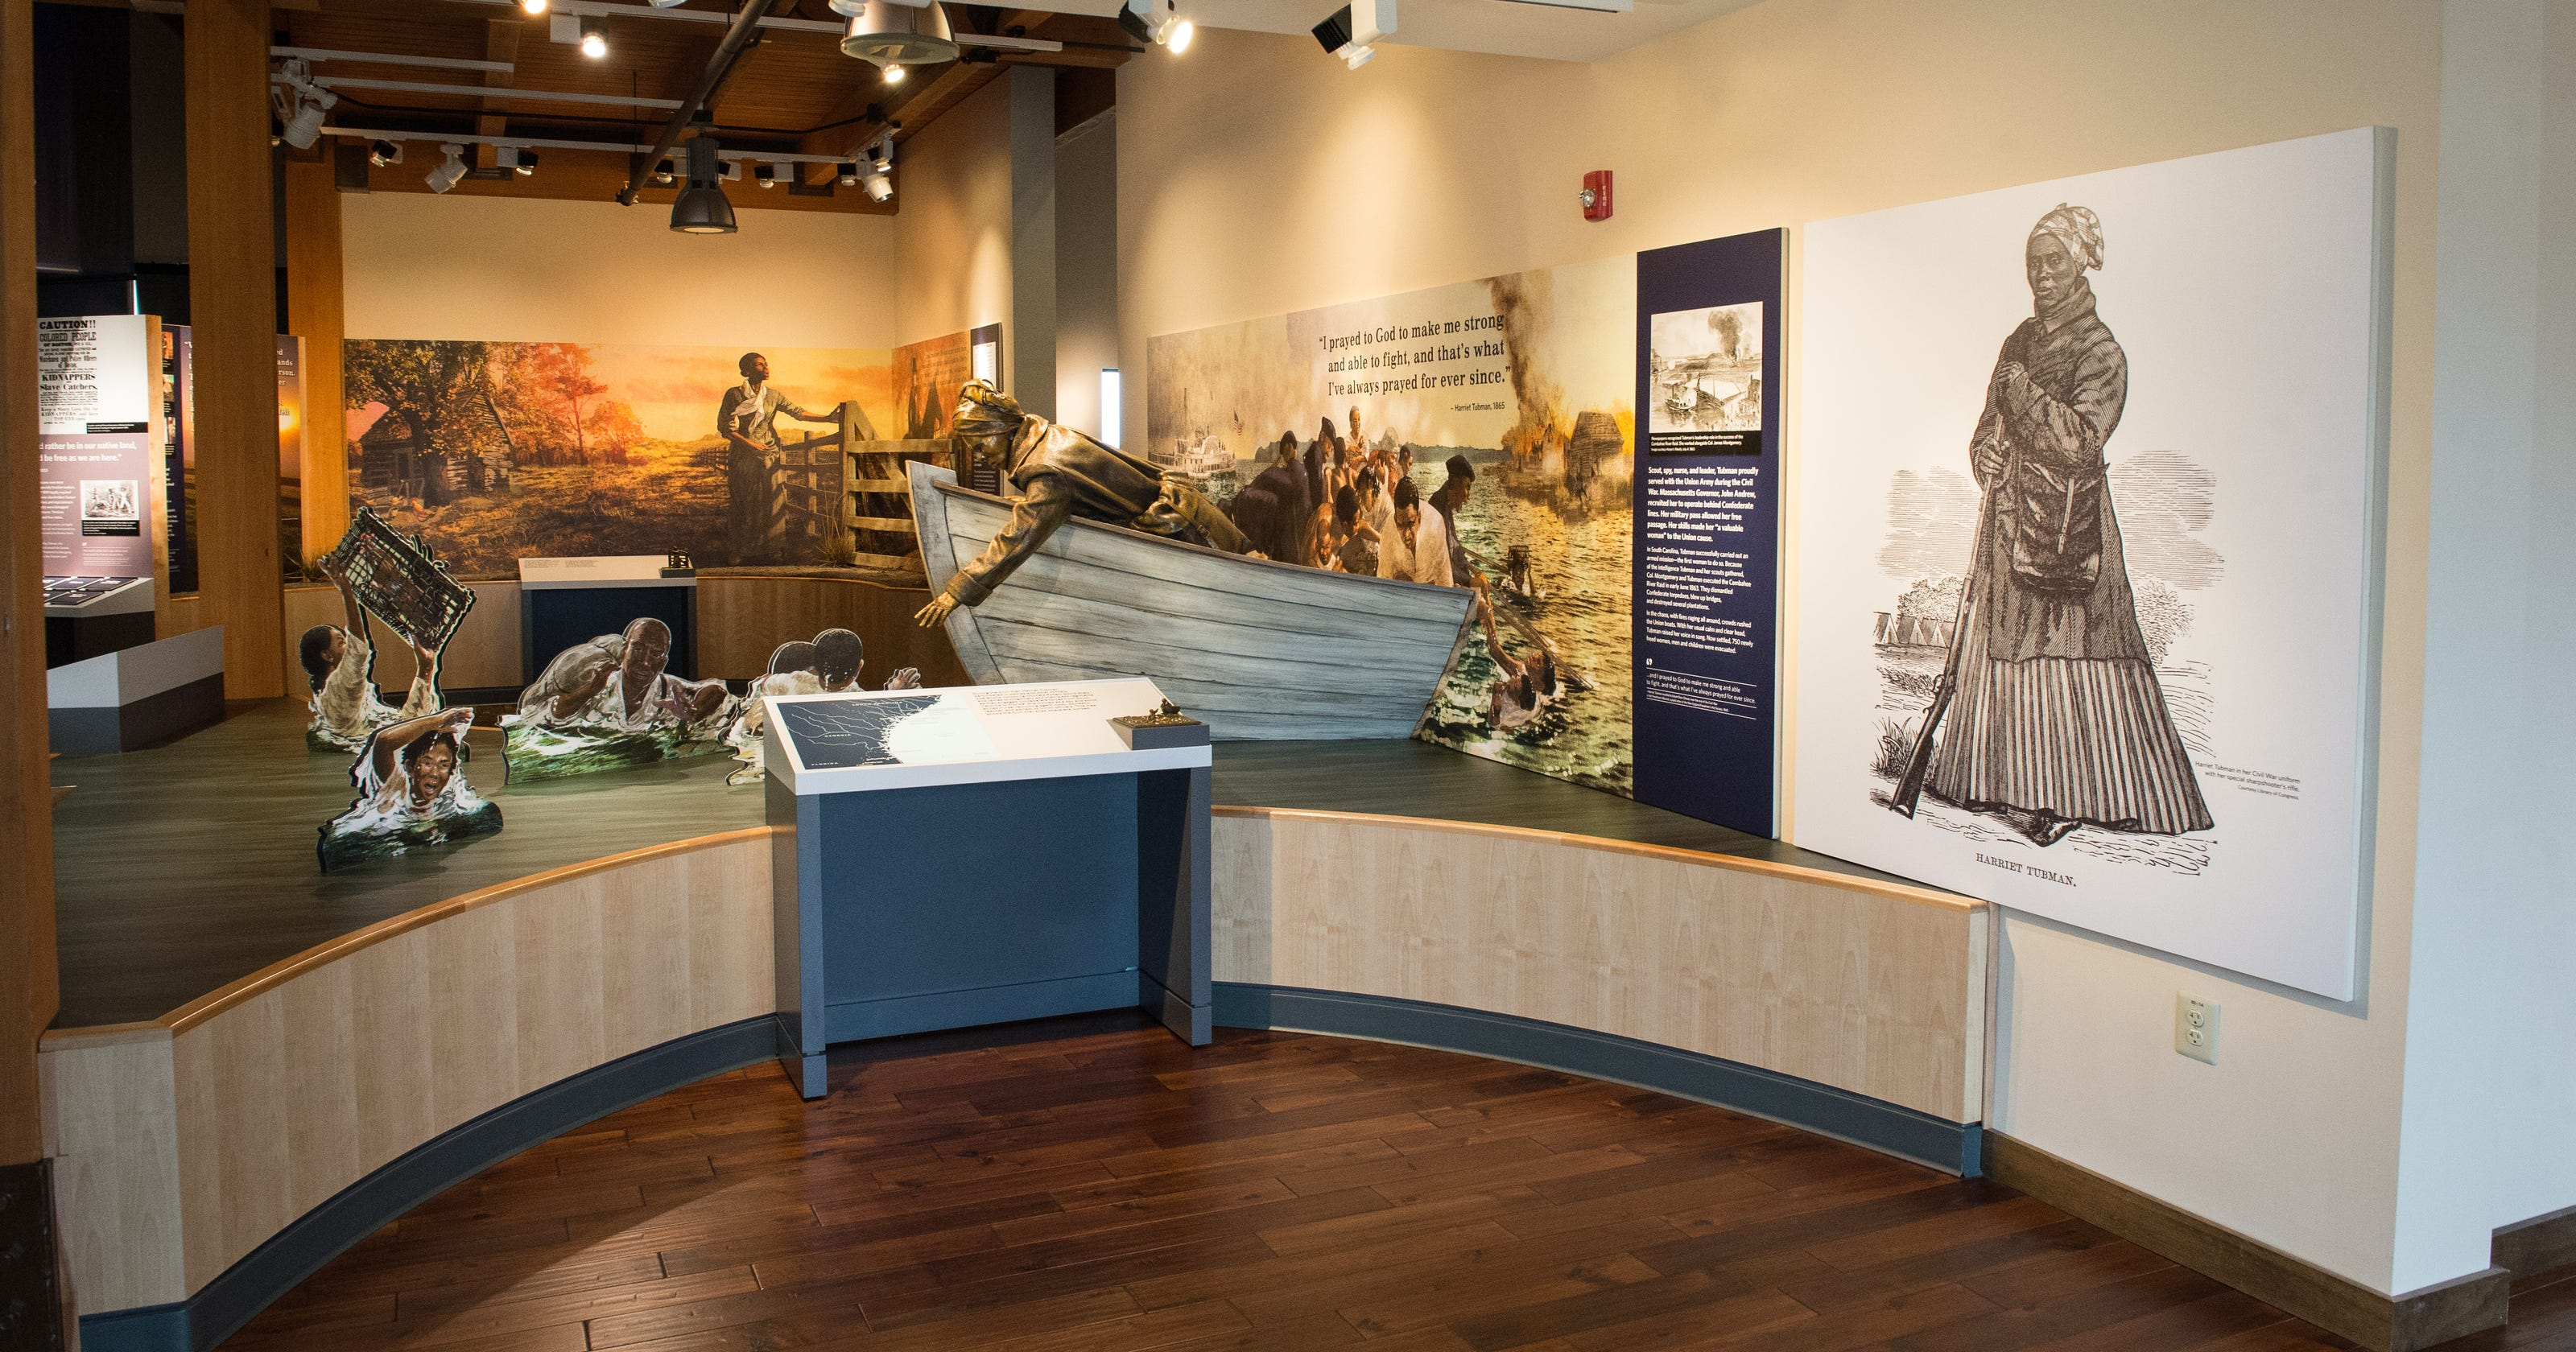 Harriet Tubman national park gets 100,000 visitors in first year